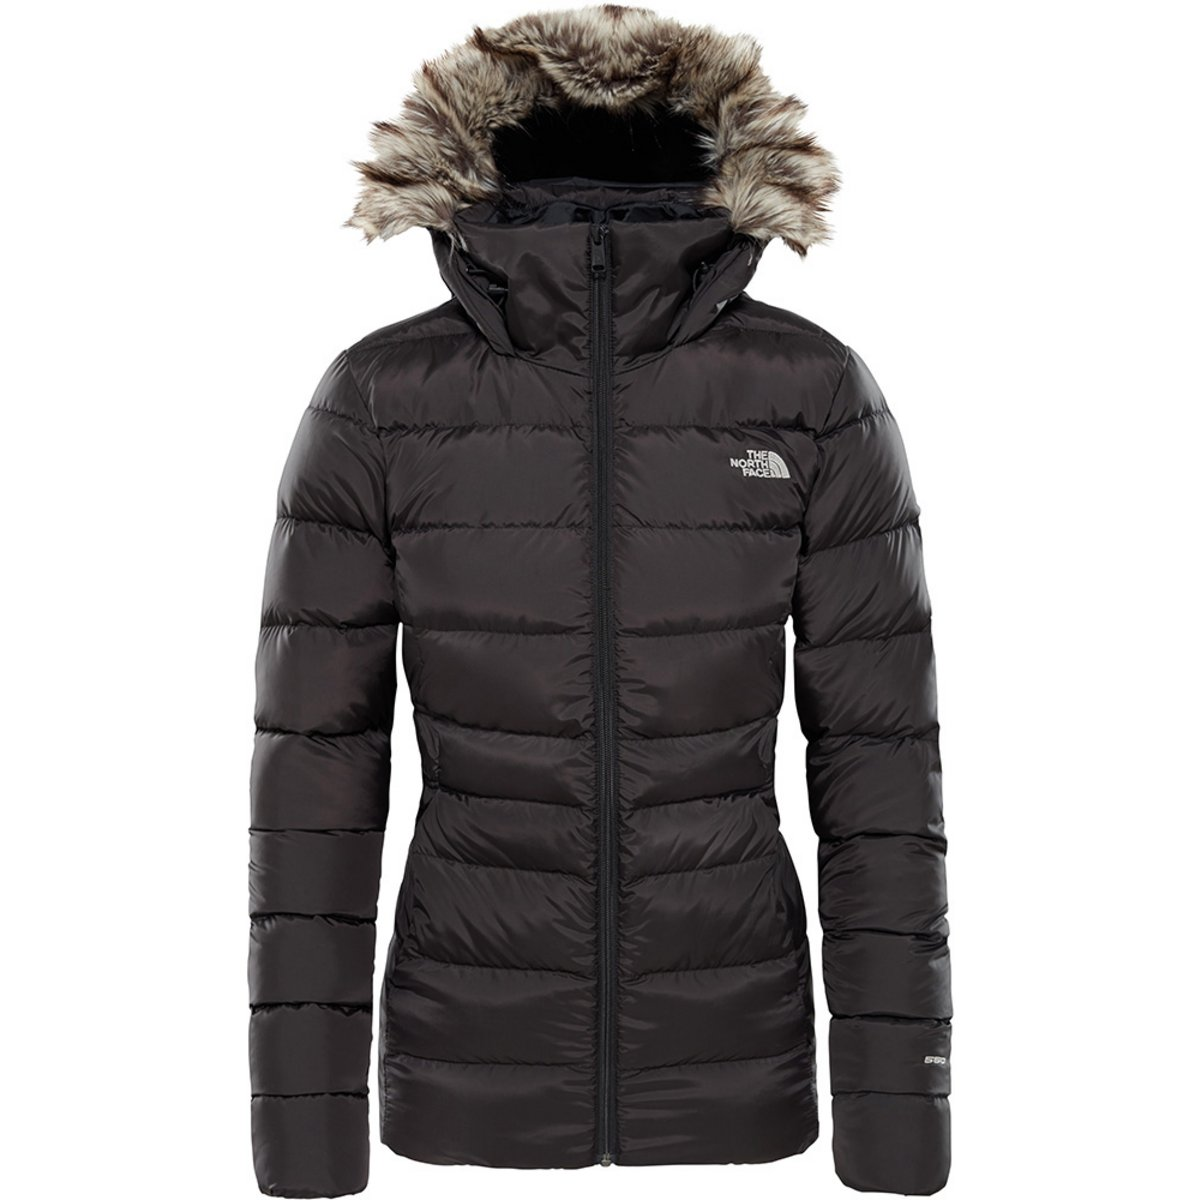 The North Face Women's Gotham 2 Jacket 0